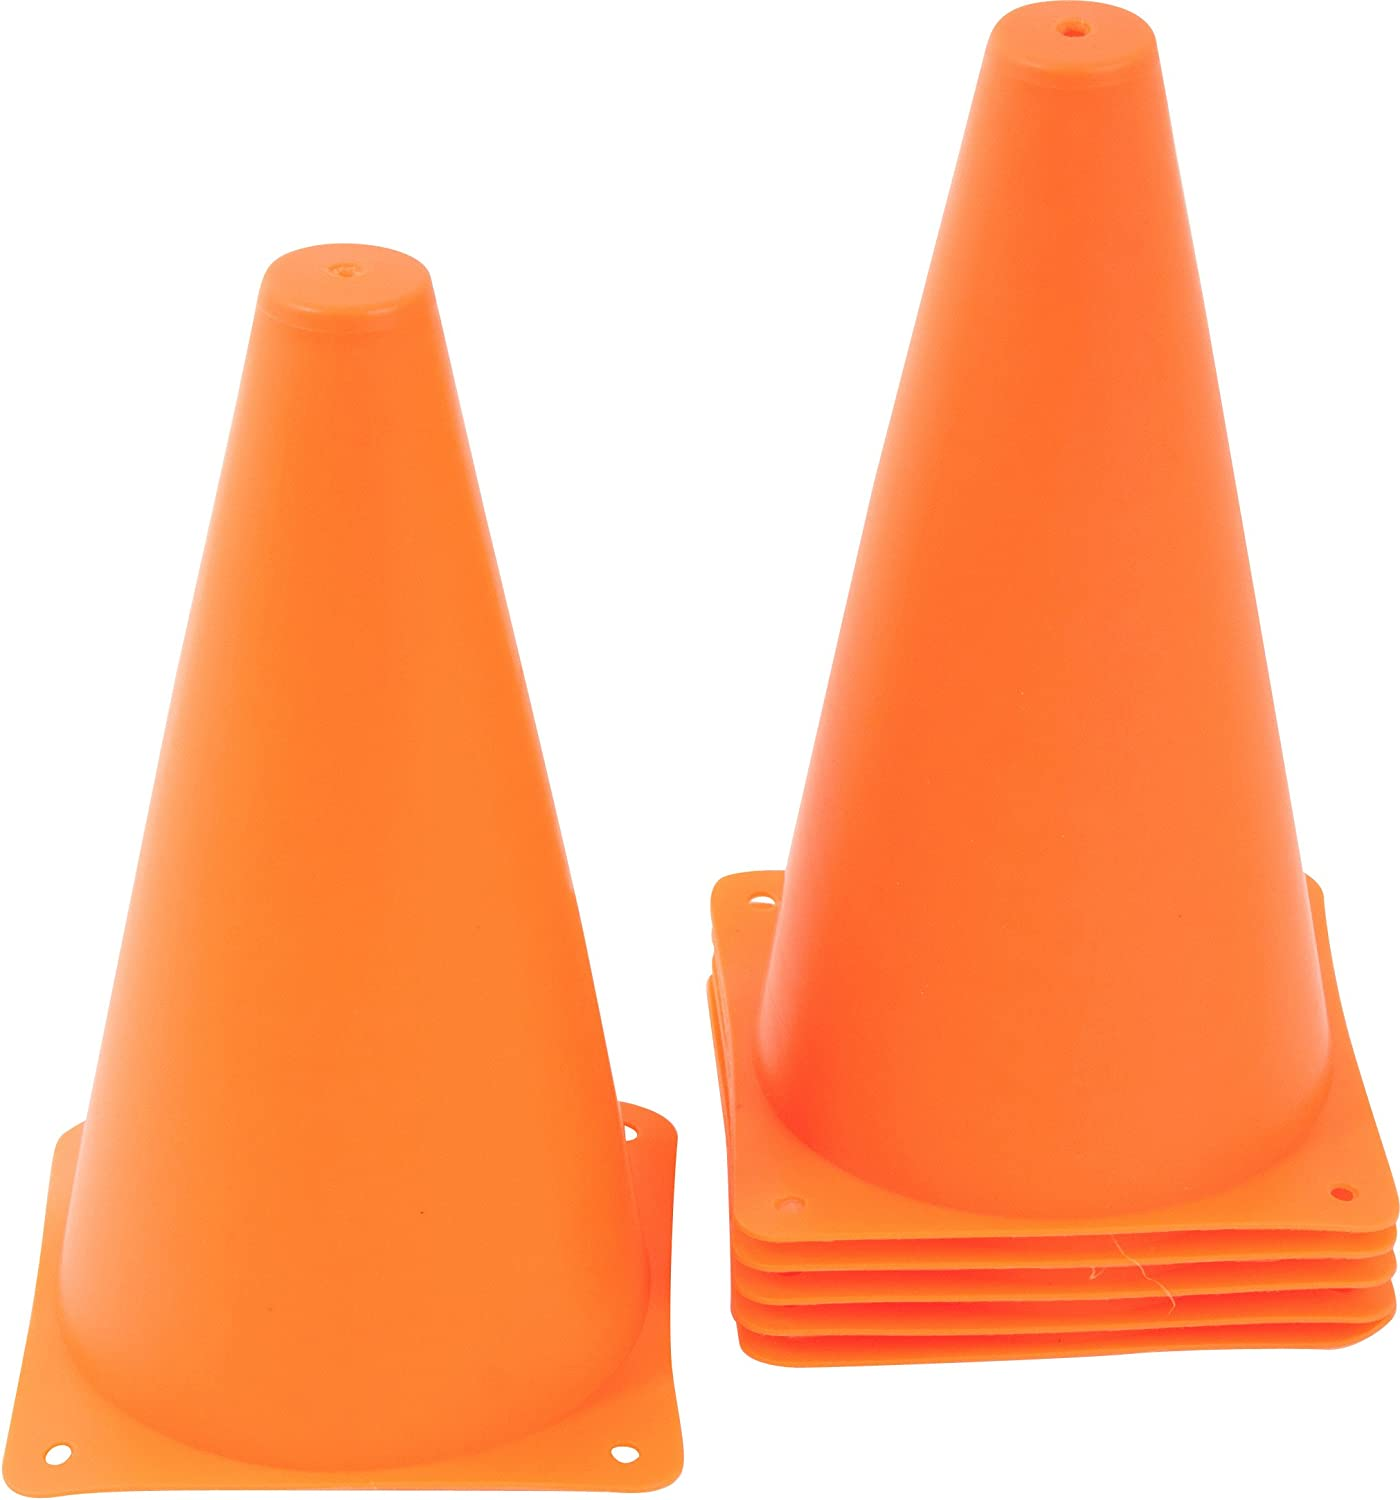 Trademark Innovations Plastic Cone Sports Training Gear, 9-Inch : Soccer Training Cones : Sports & Outdoors